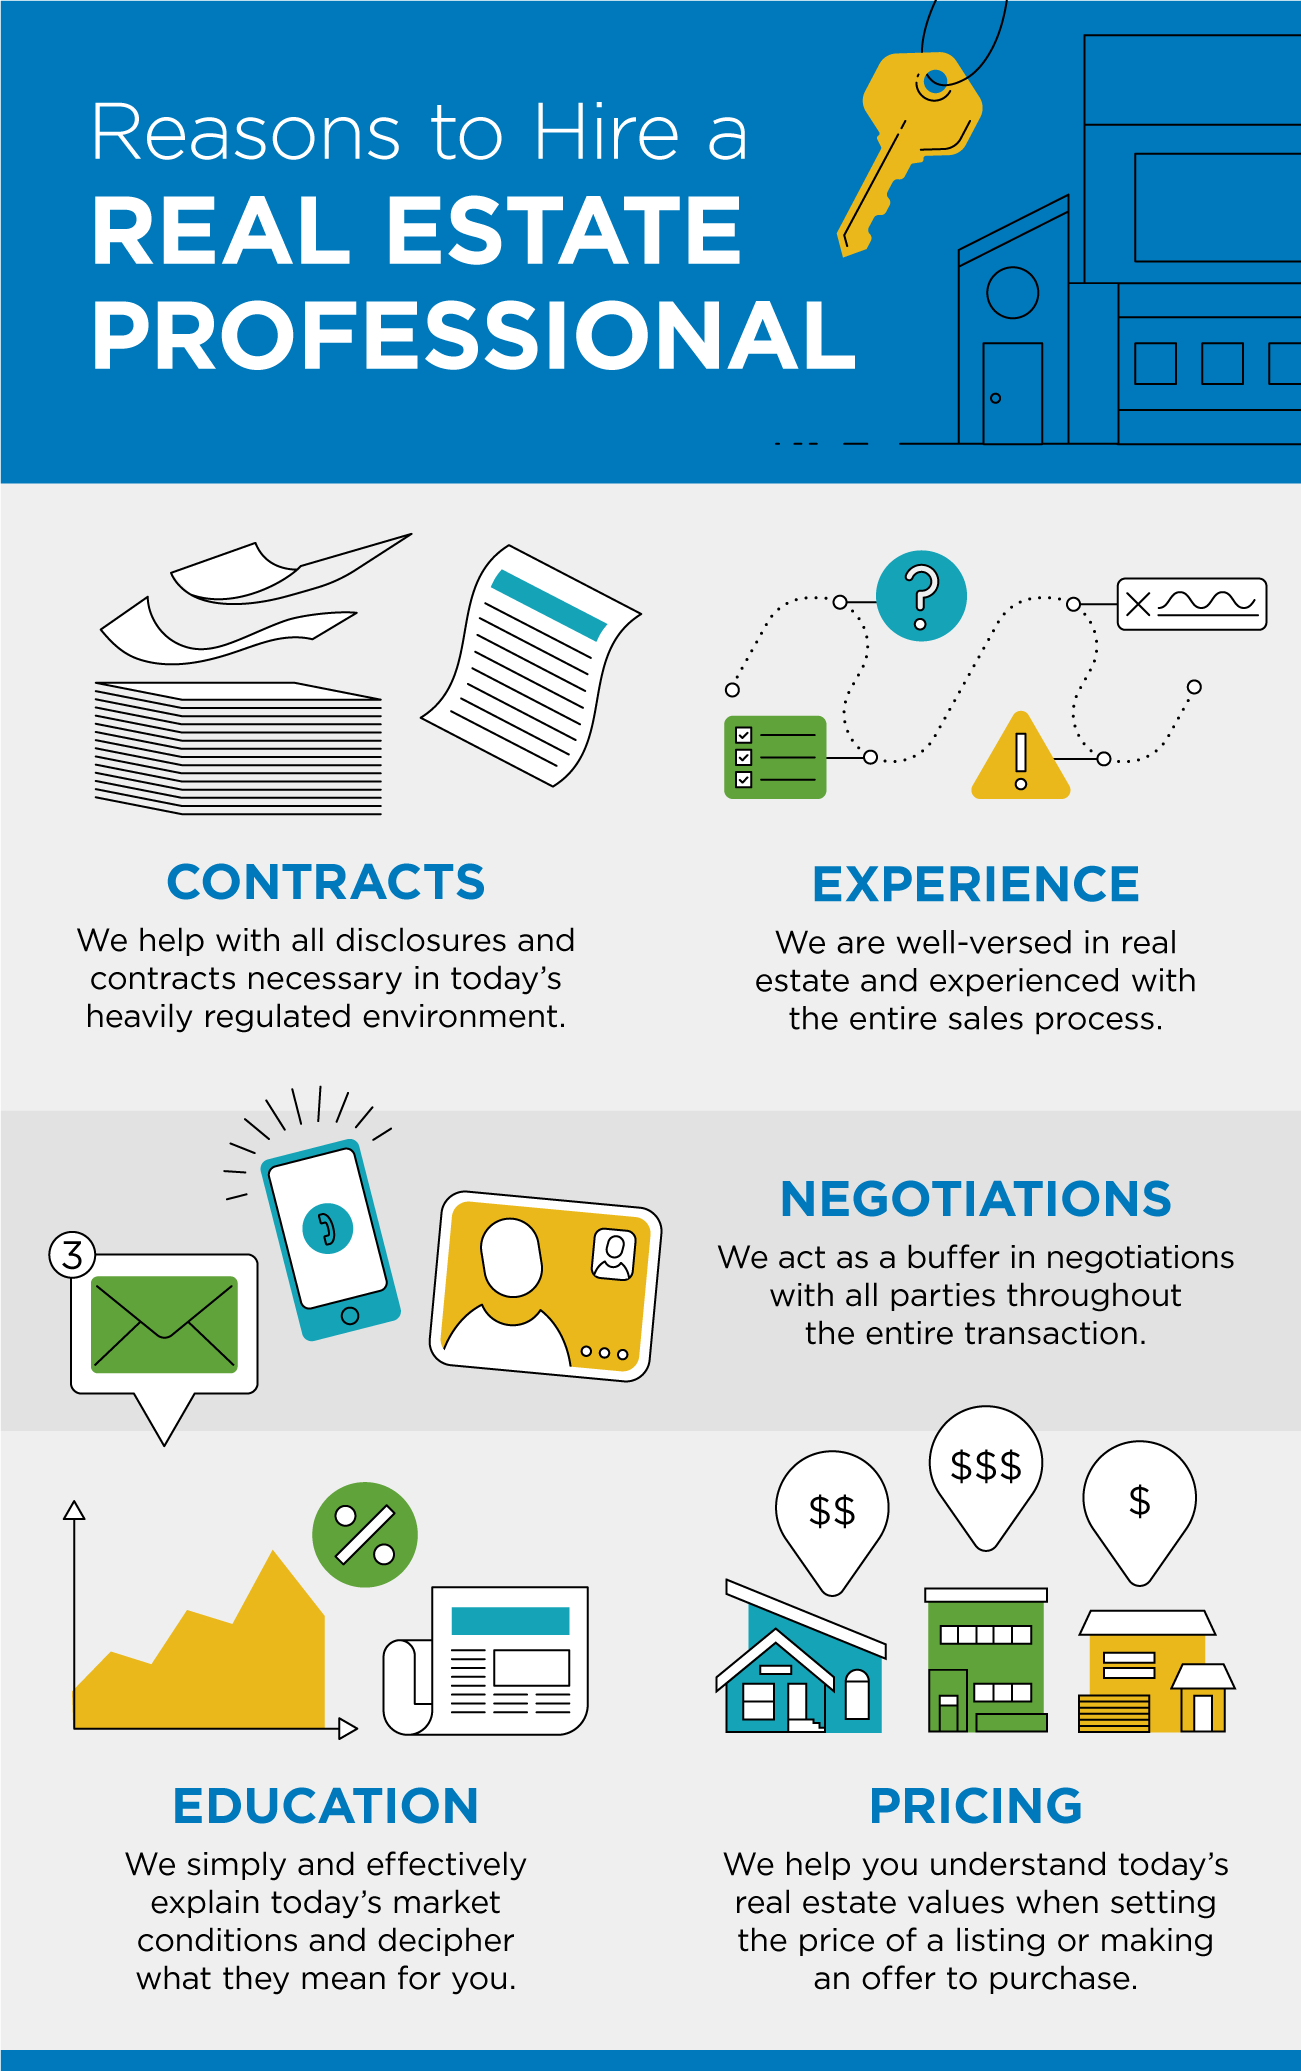 Reasons to Hire a Real Estate Professional [INFOGRAPHIC]   Simplifying The Market